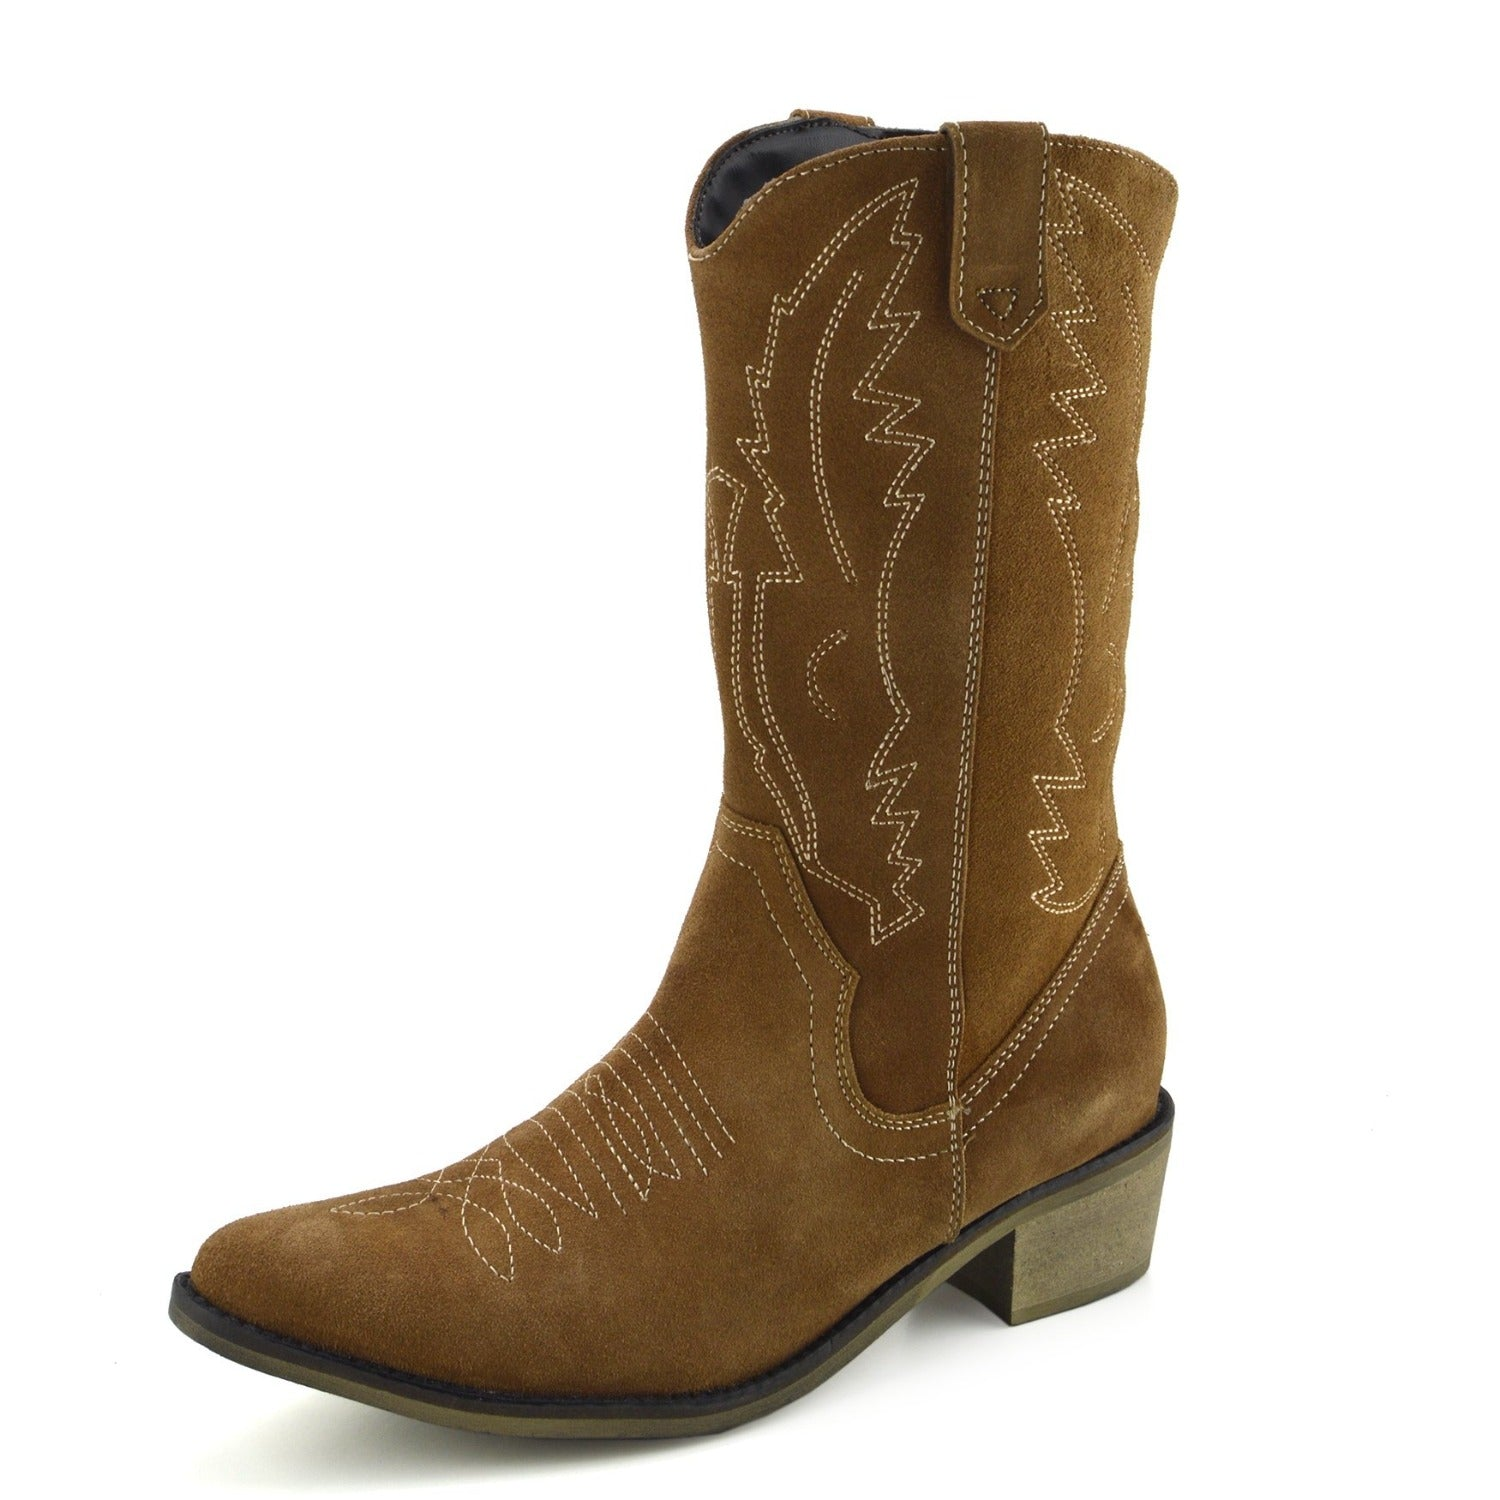 3853c64e0c6 Kitty Western Leather Cowboy Boots - Tan Suede